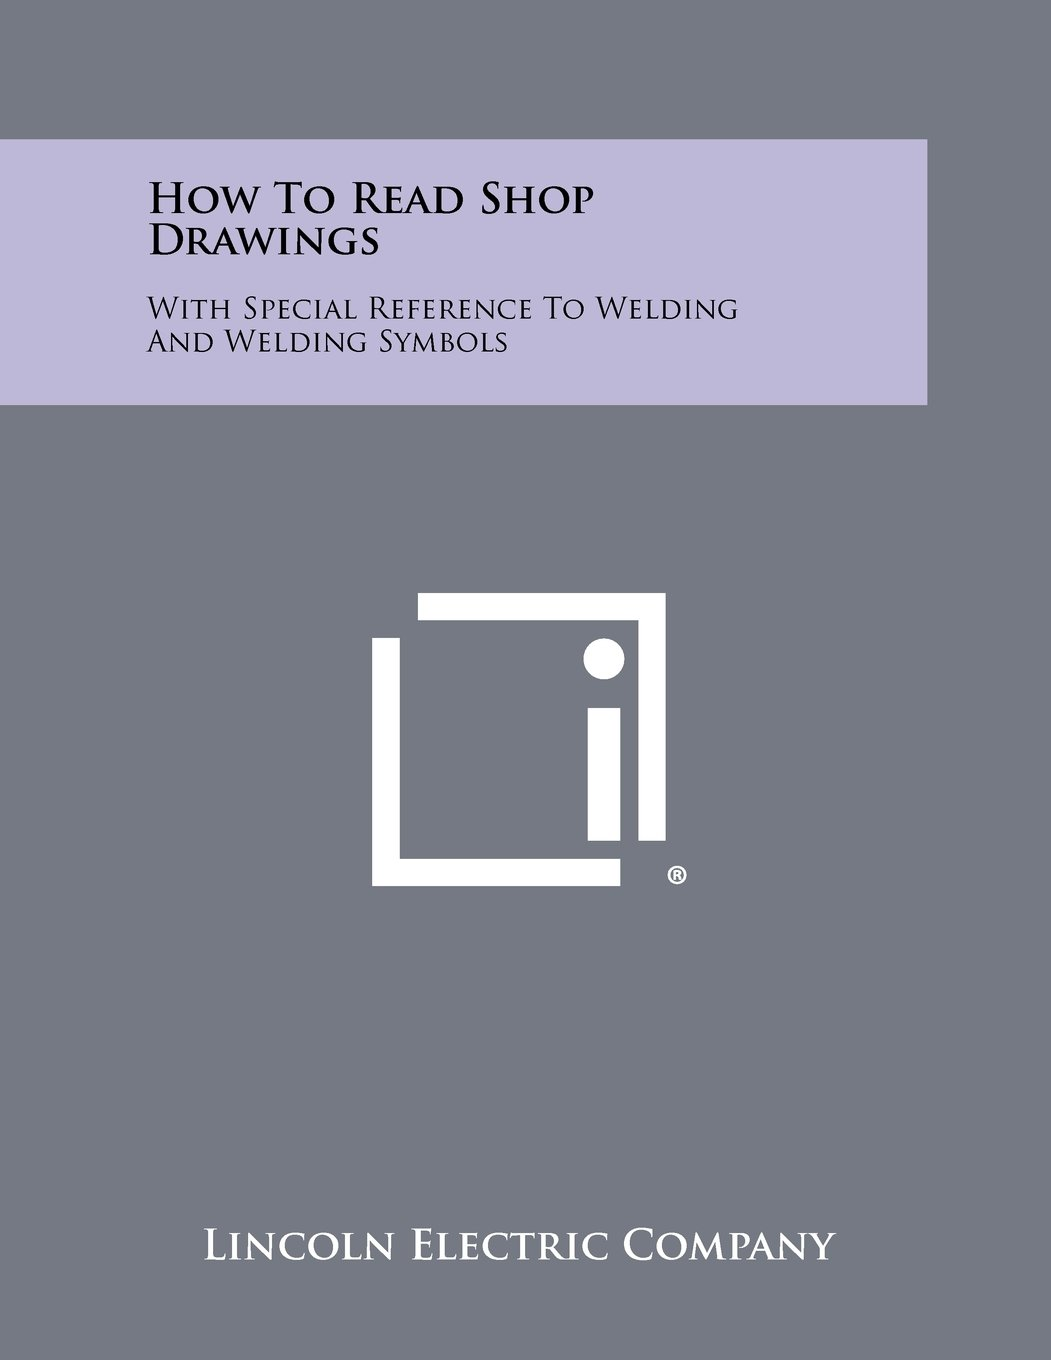 How To Read Shop Drawings With Special Reference To Welding And